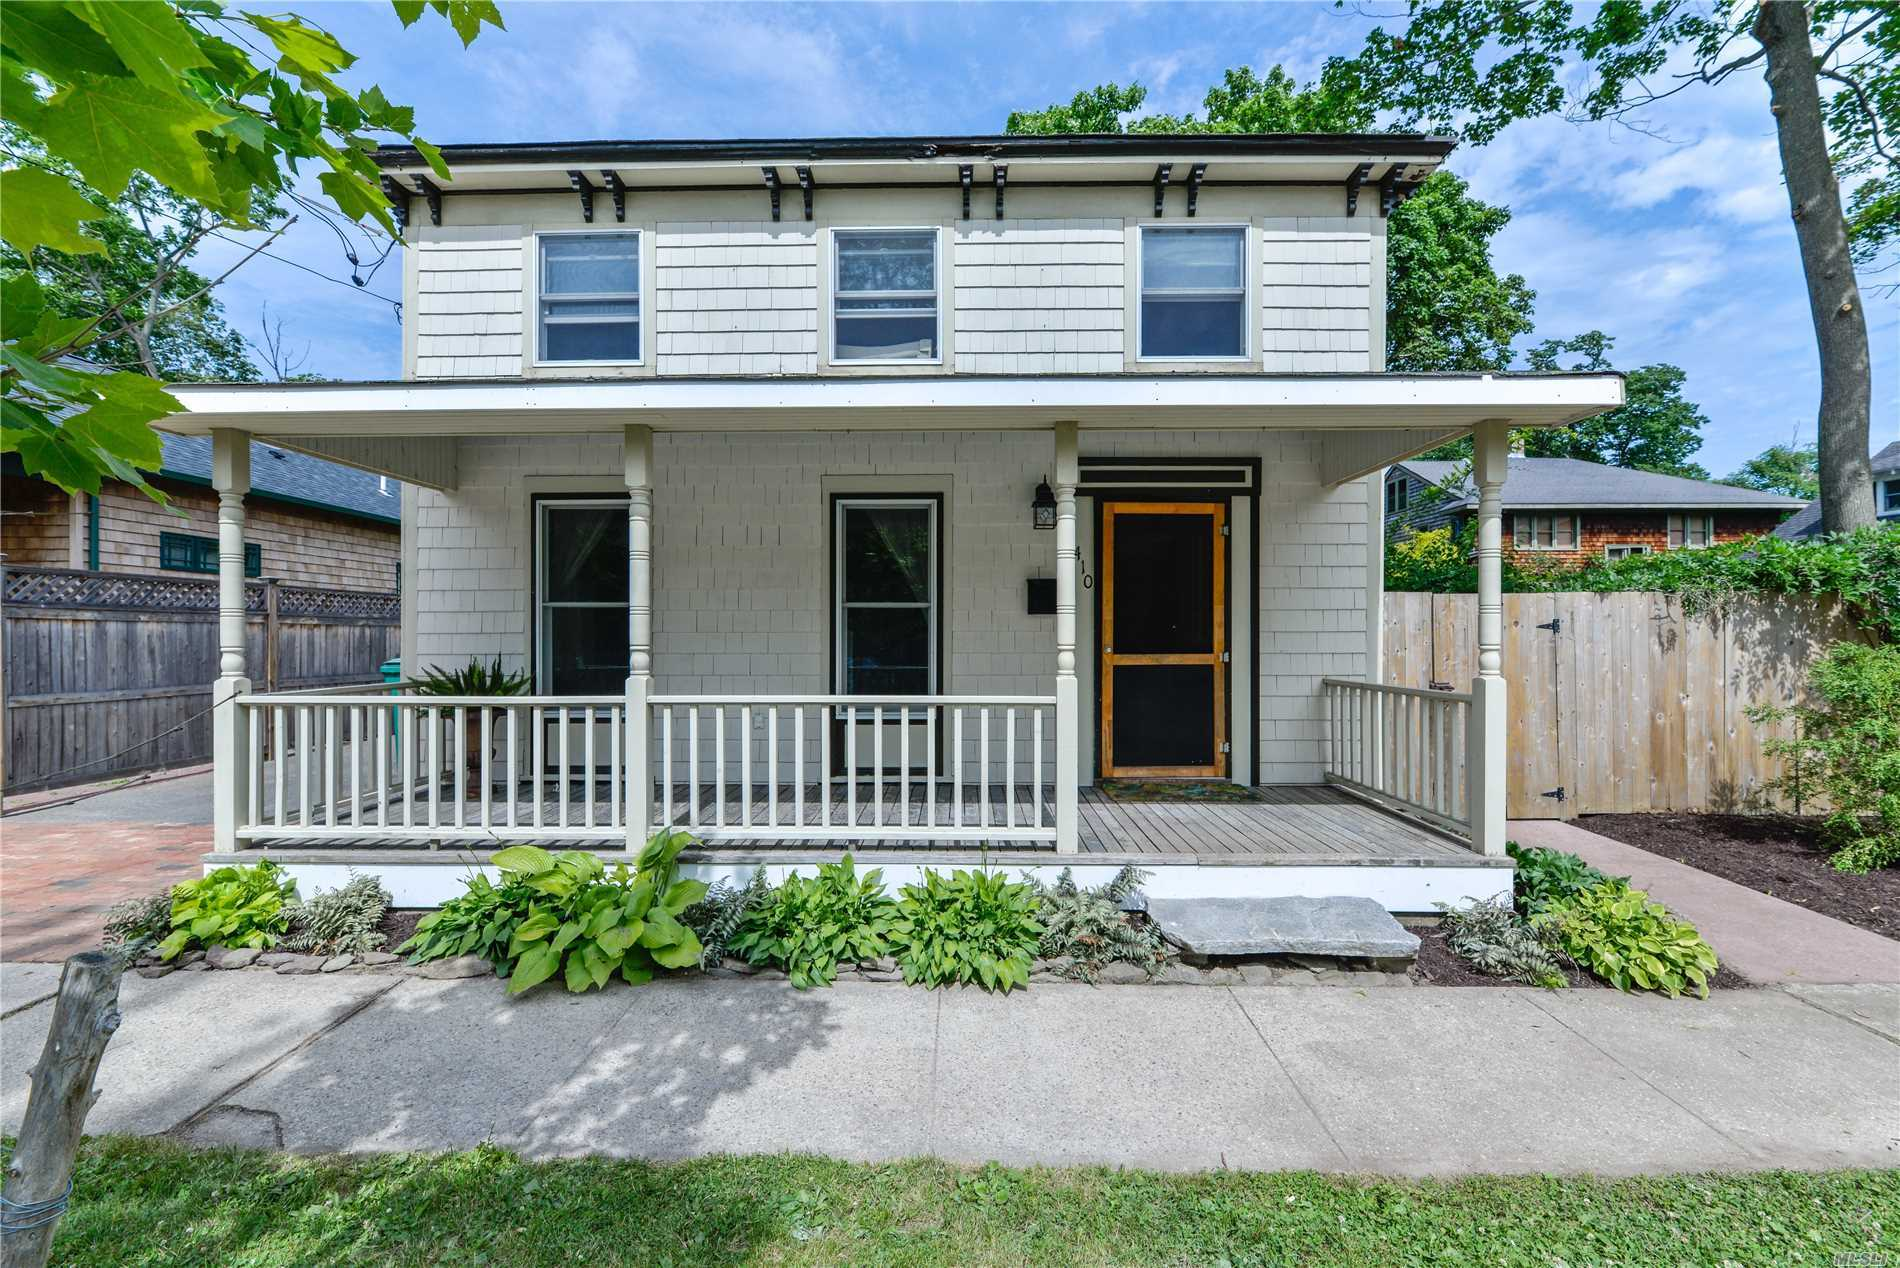 Classic Greenport Village Charmer With Great Light, Period Details, Nicely Proportioned Rooms And Close To All Shops, Restaurants, Village Marina And More. Detached 1 Car Garage Would Make Excellent Art Studio Or Shelter For Your Wheels. Village Living Awaits.